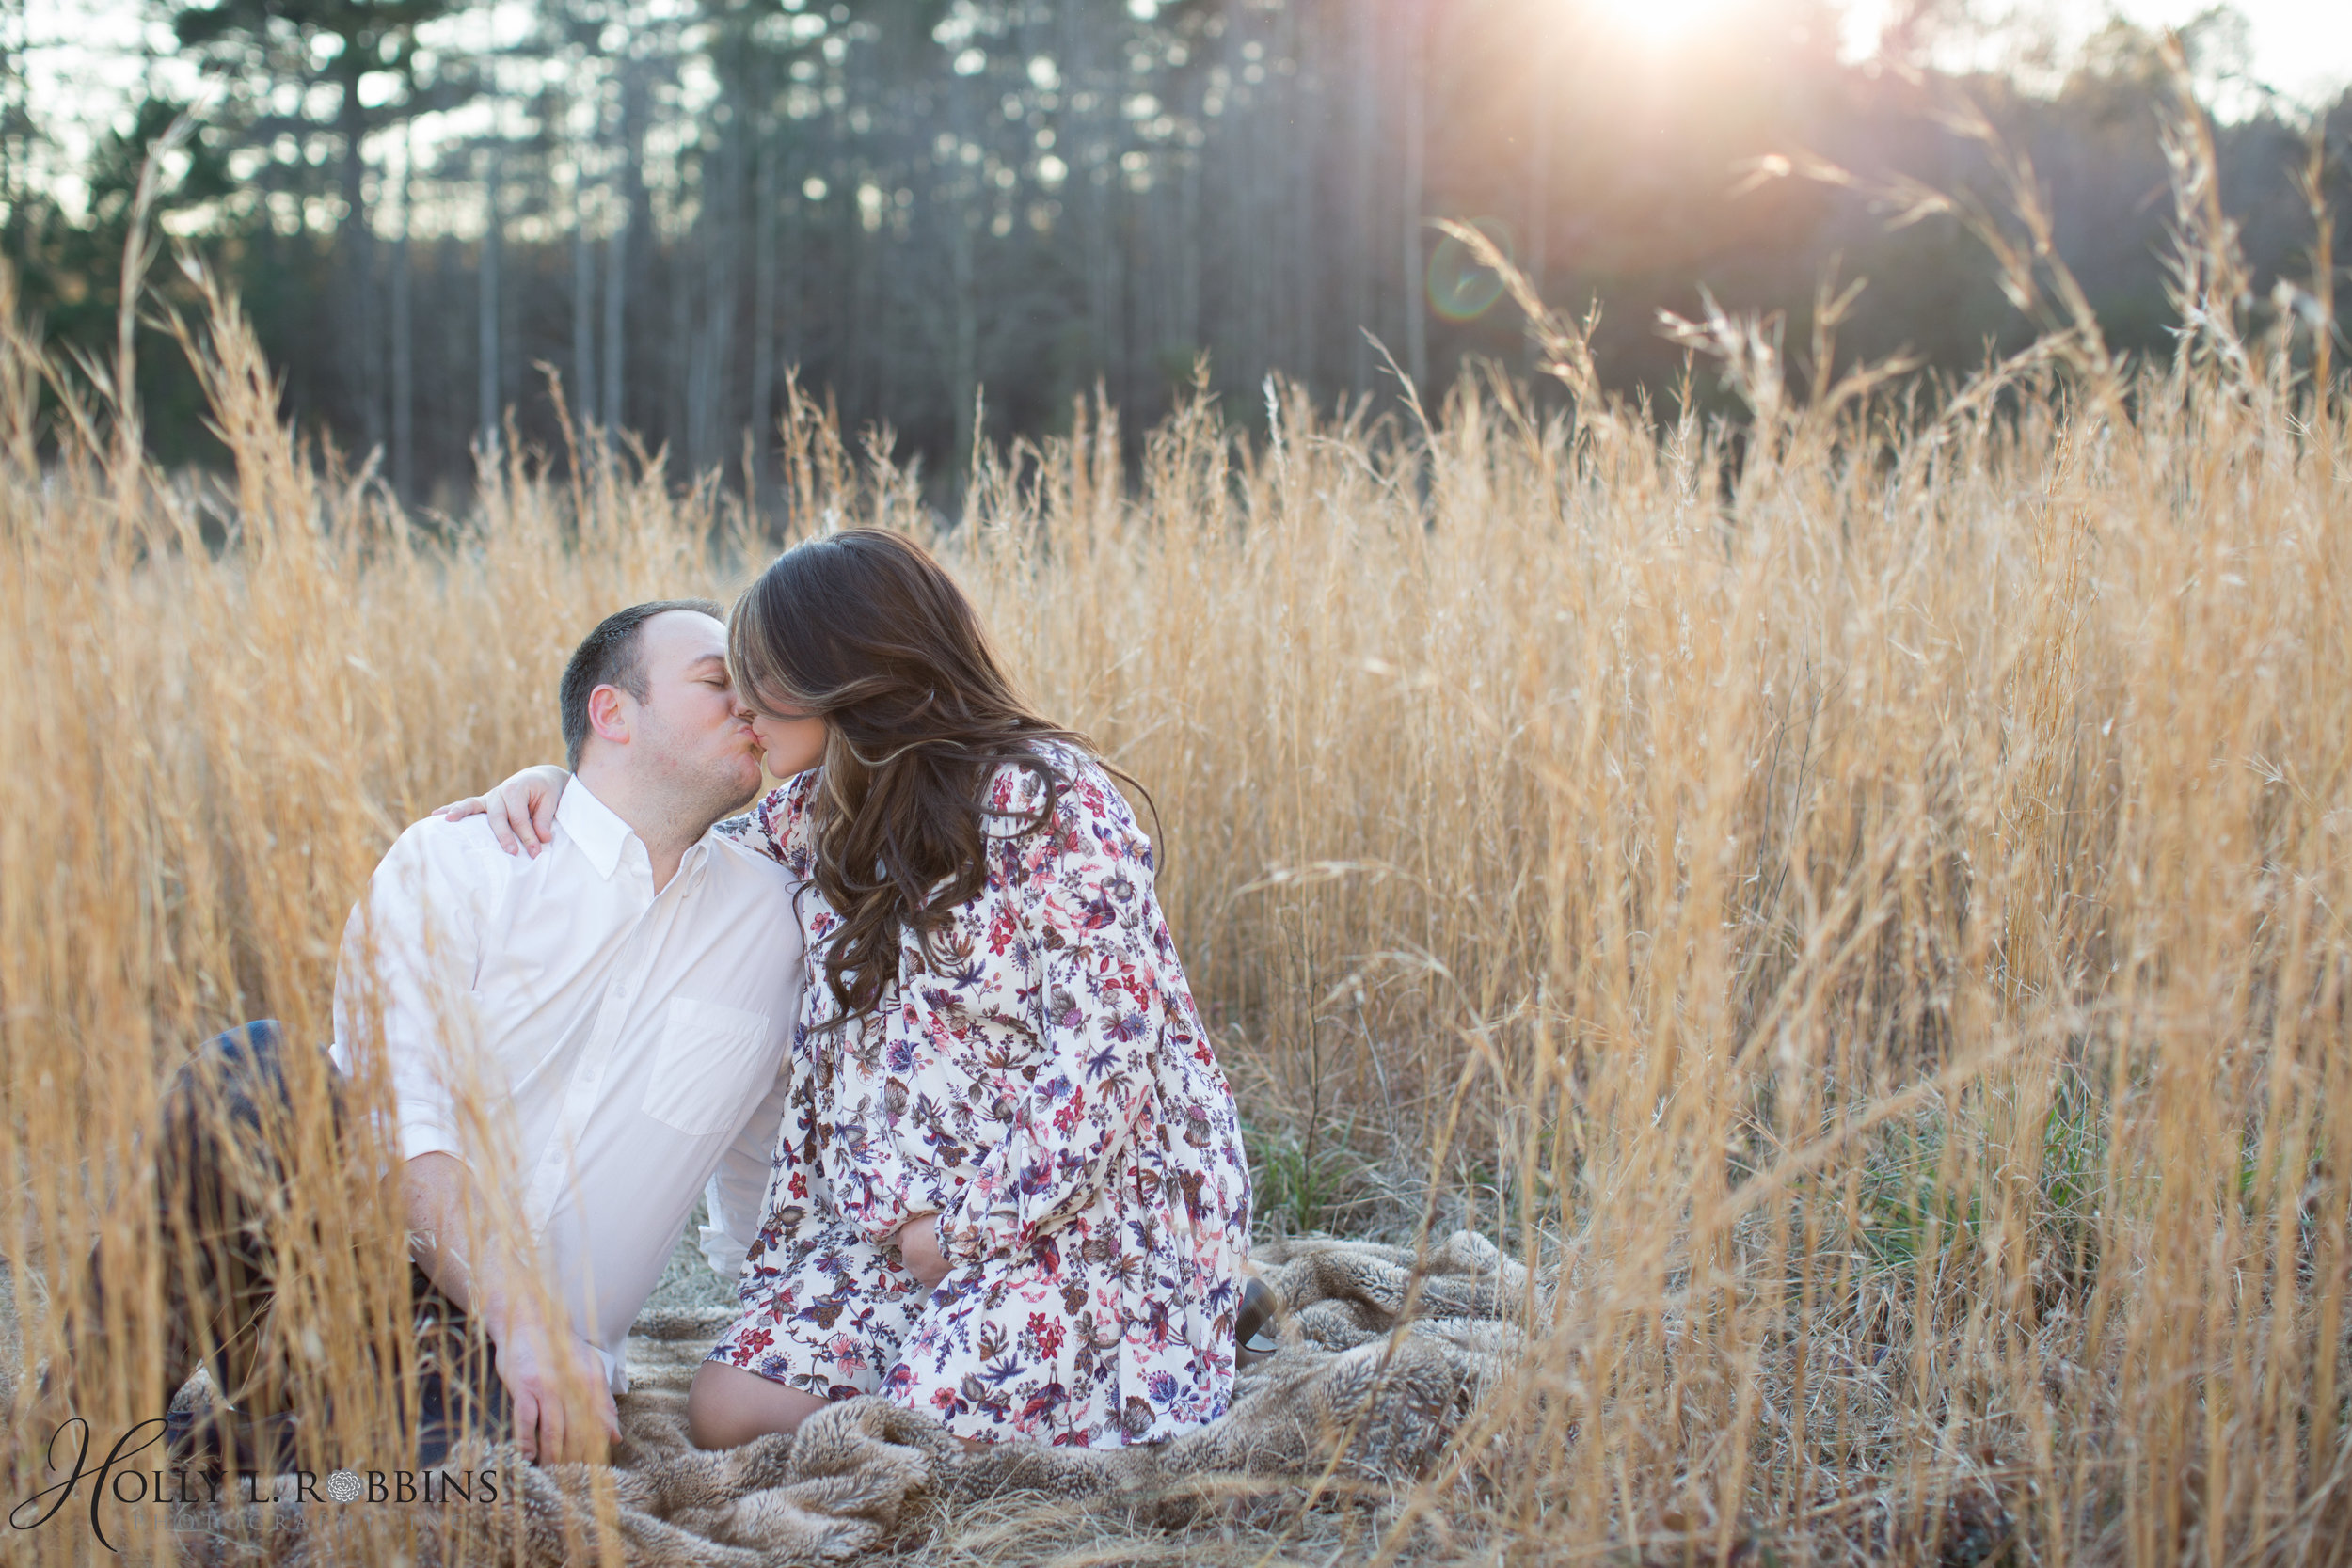 Social_Circle_Ga_Maternity_Photographers_Holly_L_Robbins-4